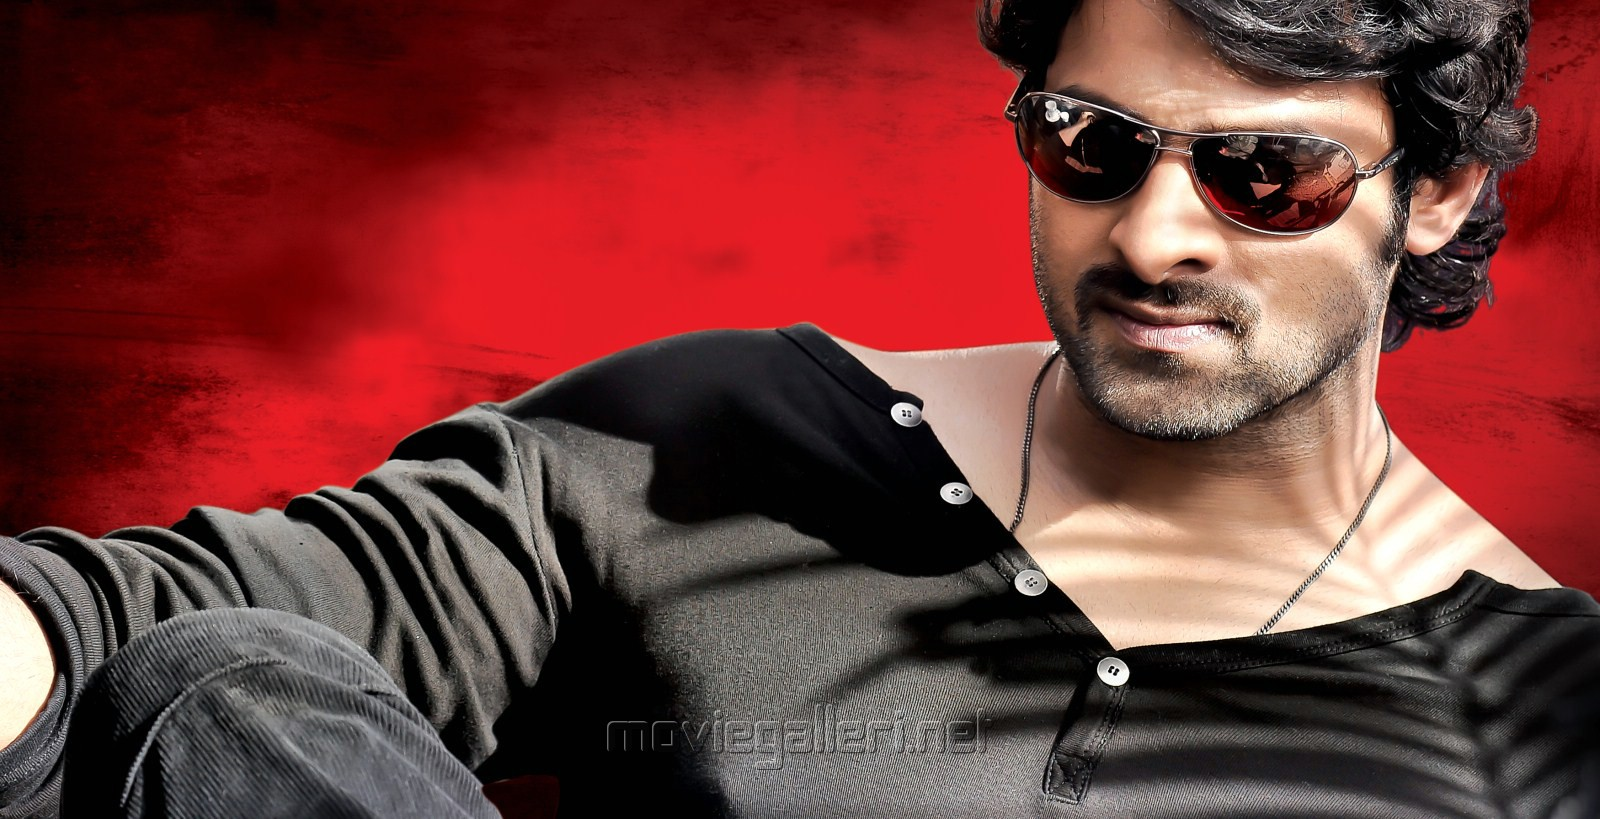 Prabhas Rebel New Stills Wallpapers Ultra Hd 2000: Stylish Prabhas HQ Wallpaper In Rebel